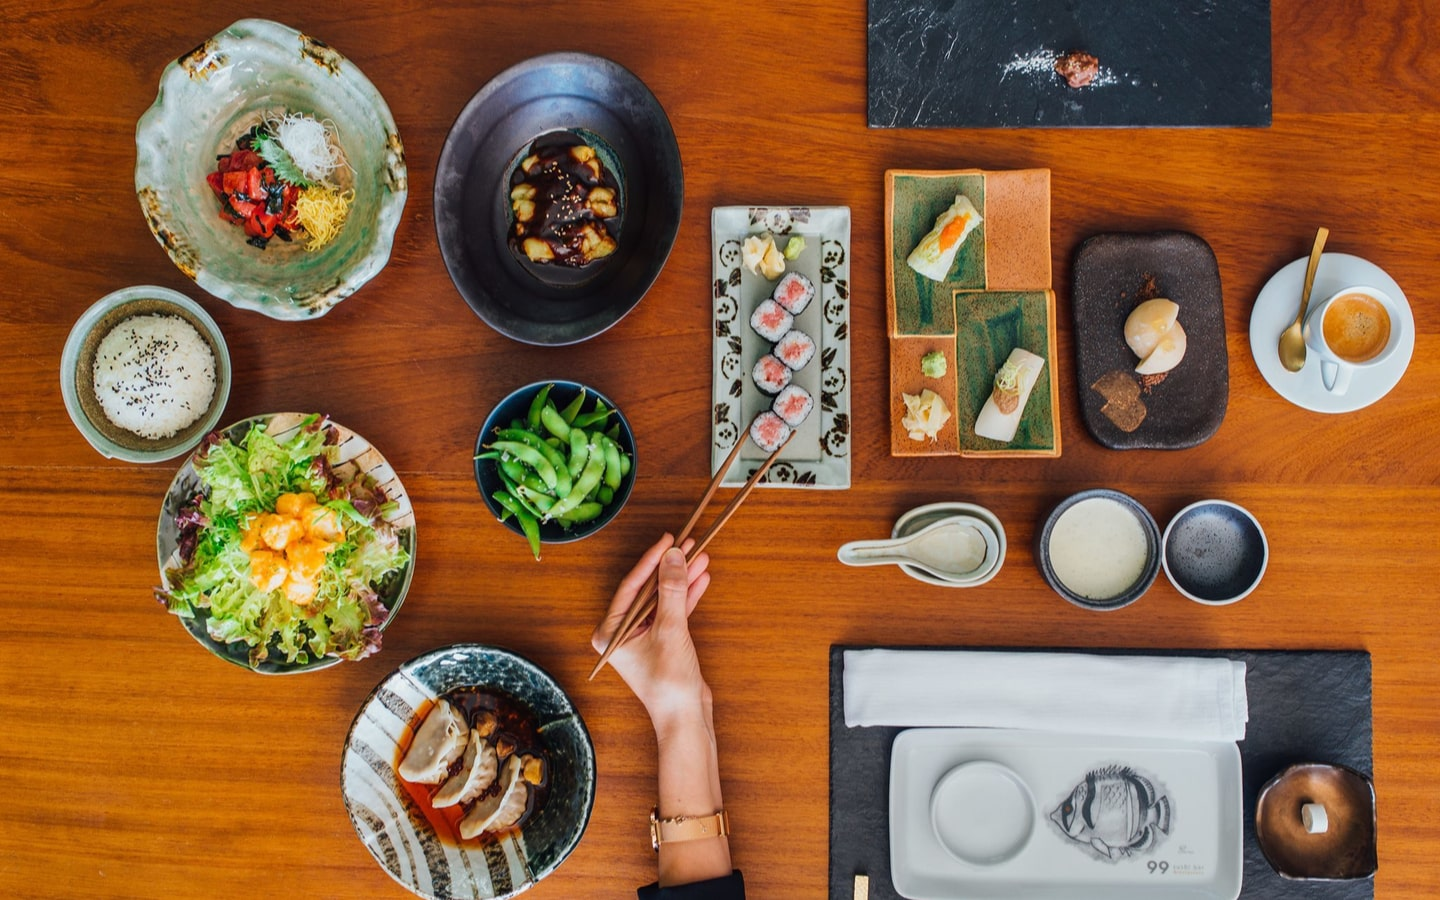 Japanese dishes served at 99 sushi bar, which has one of the best suhoor in Abu Dhabi